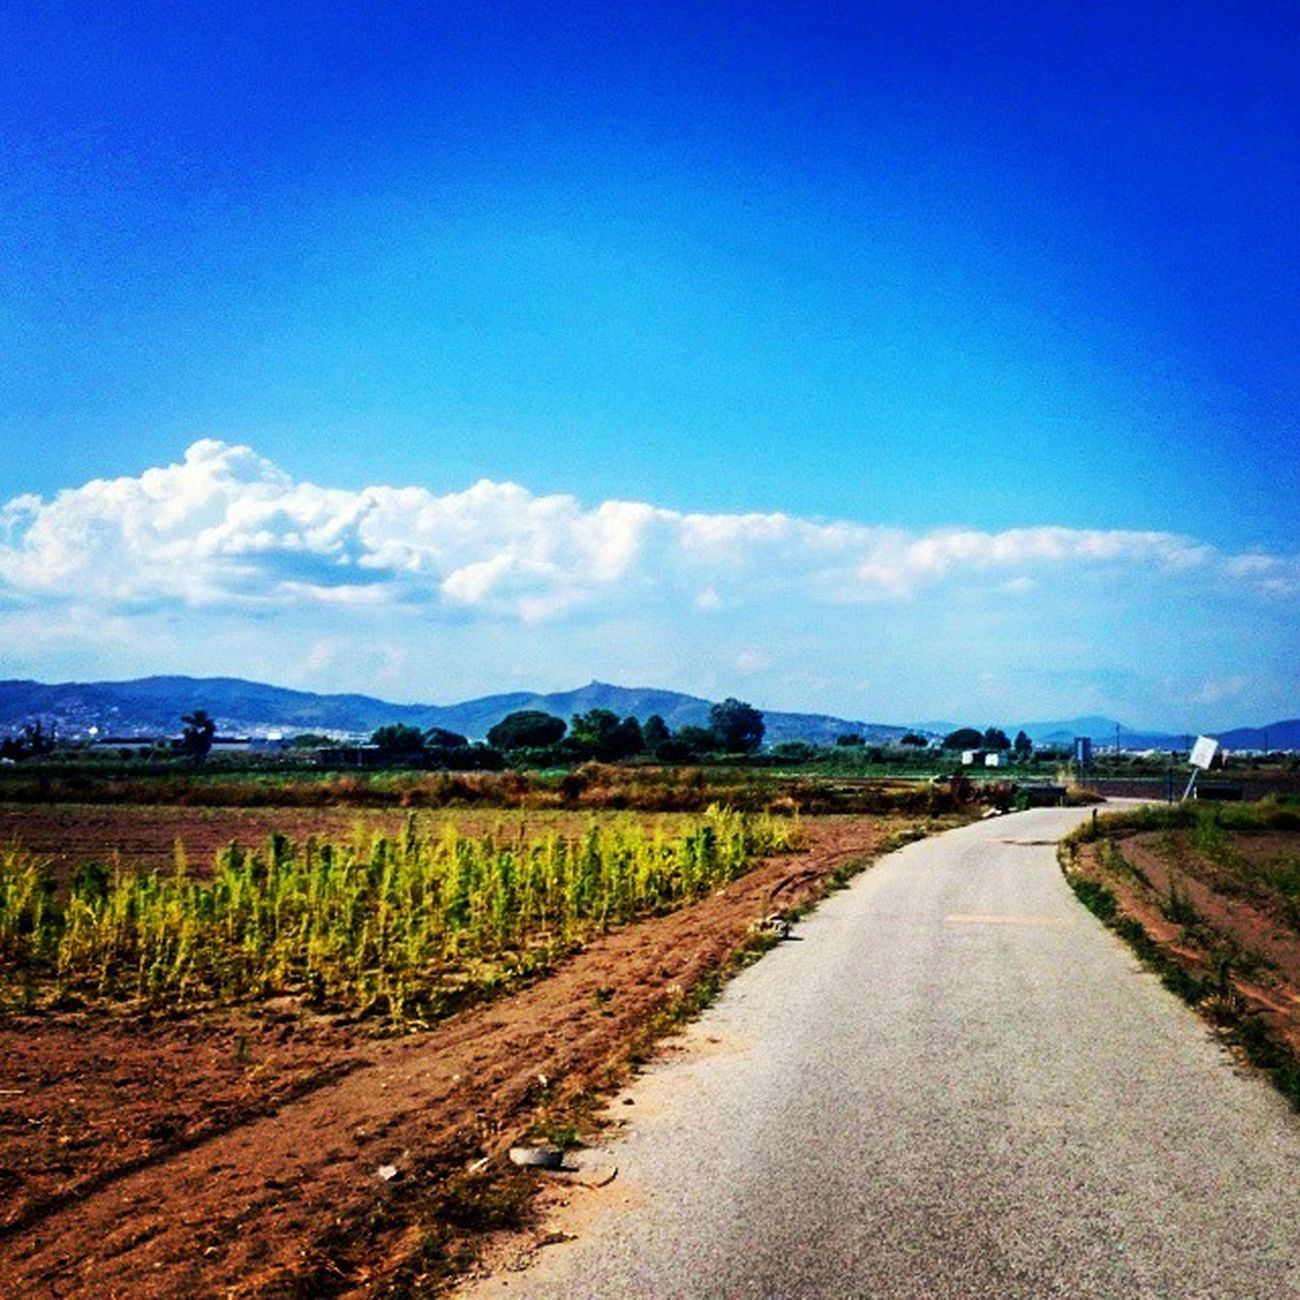 Countryside Barça Barcelona Romanticadventures Exploring Traveling Love Beautiful Longwalk Gavà SPAIN Perfect Paradise Sunny June 2015  2ndDate Instagood Shotoftheday